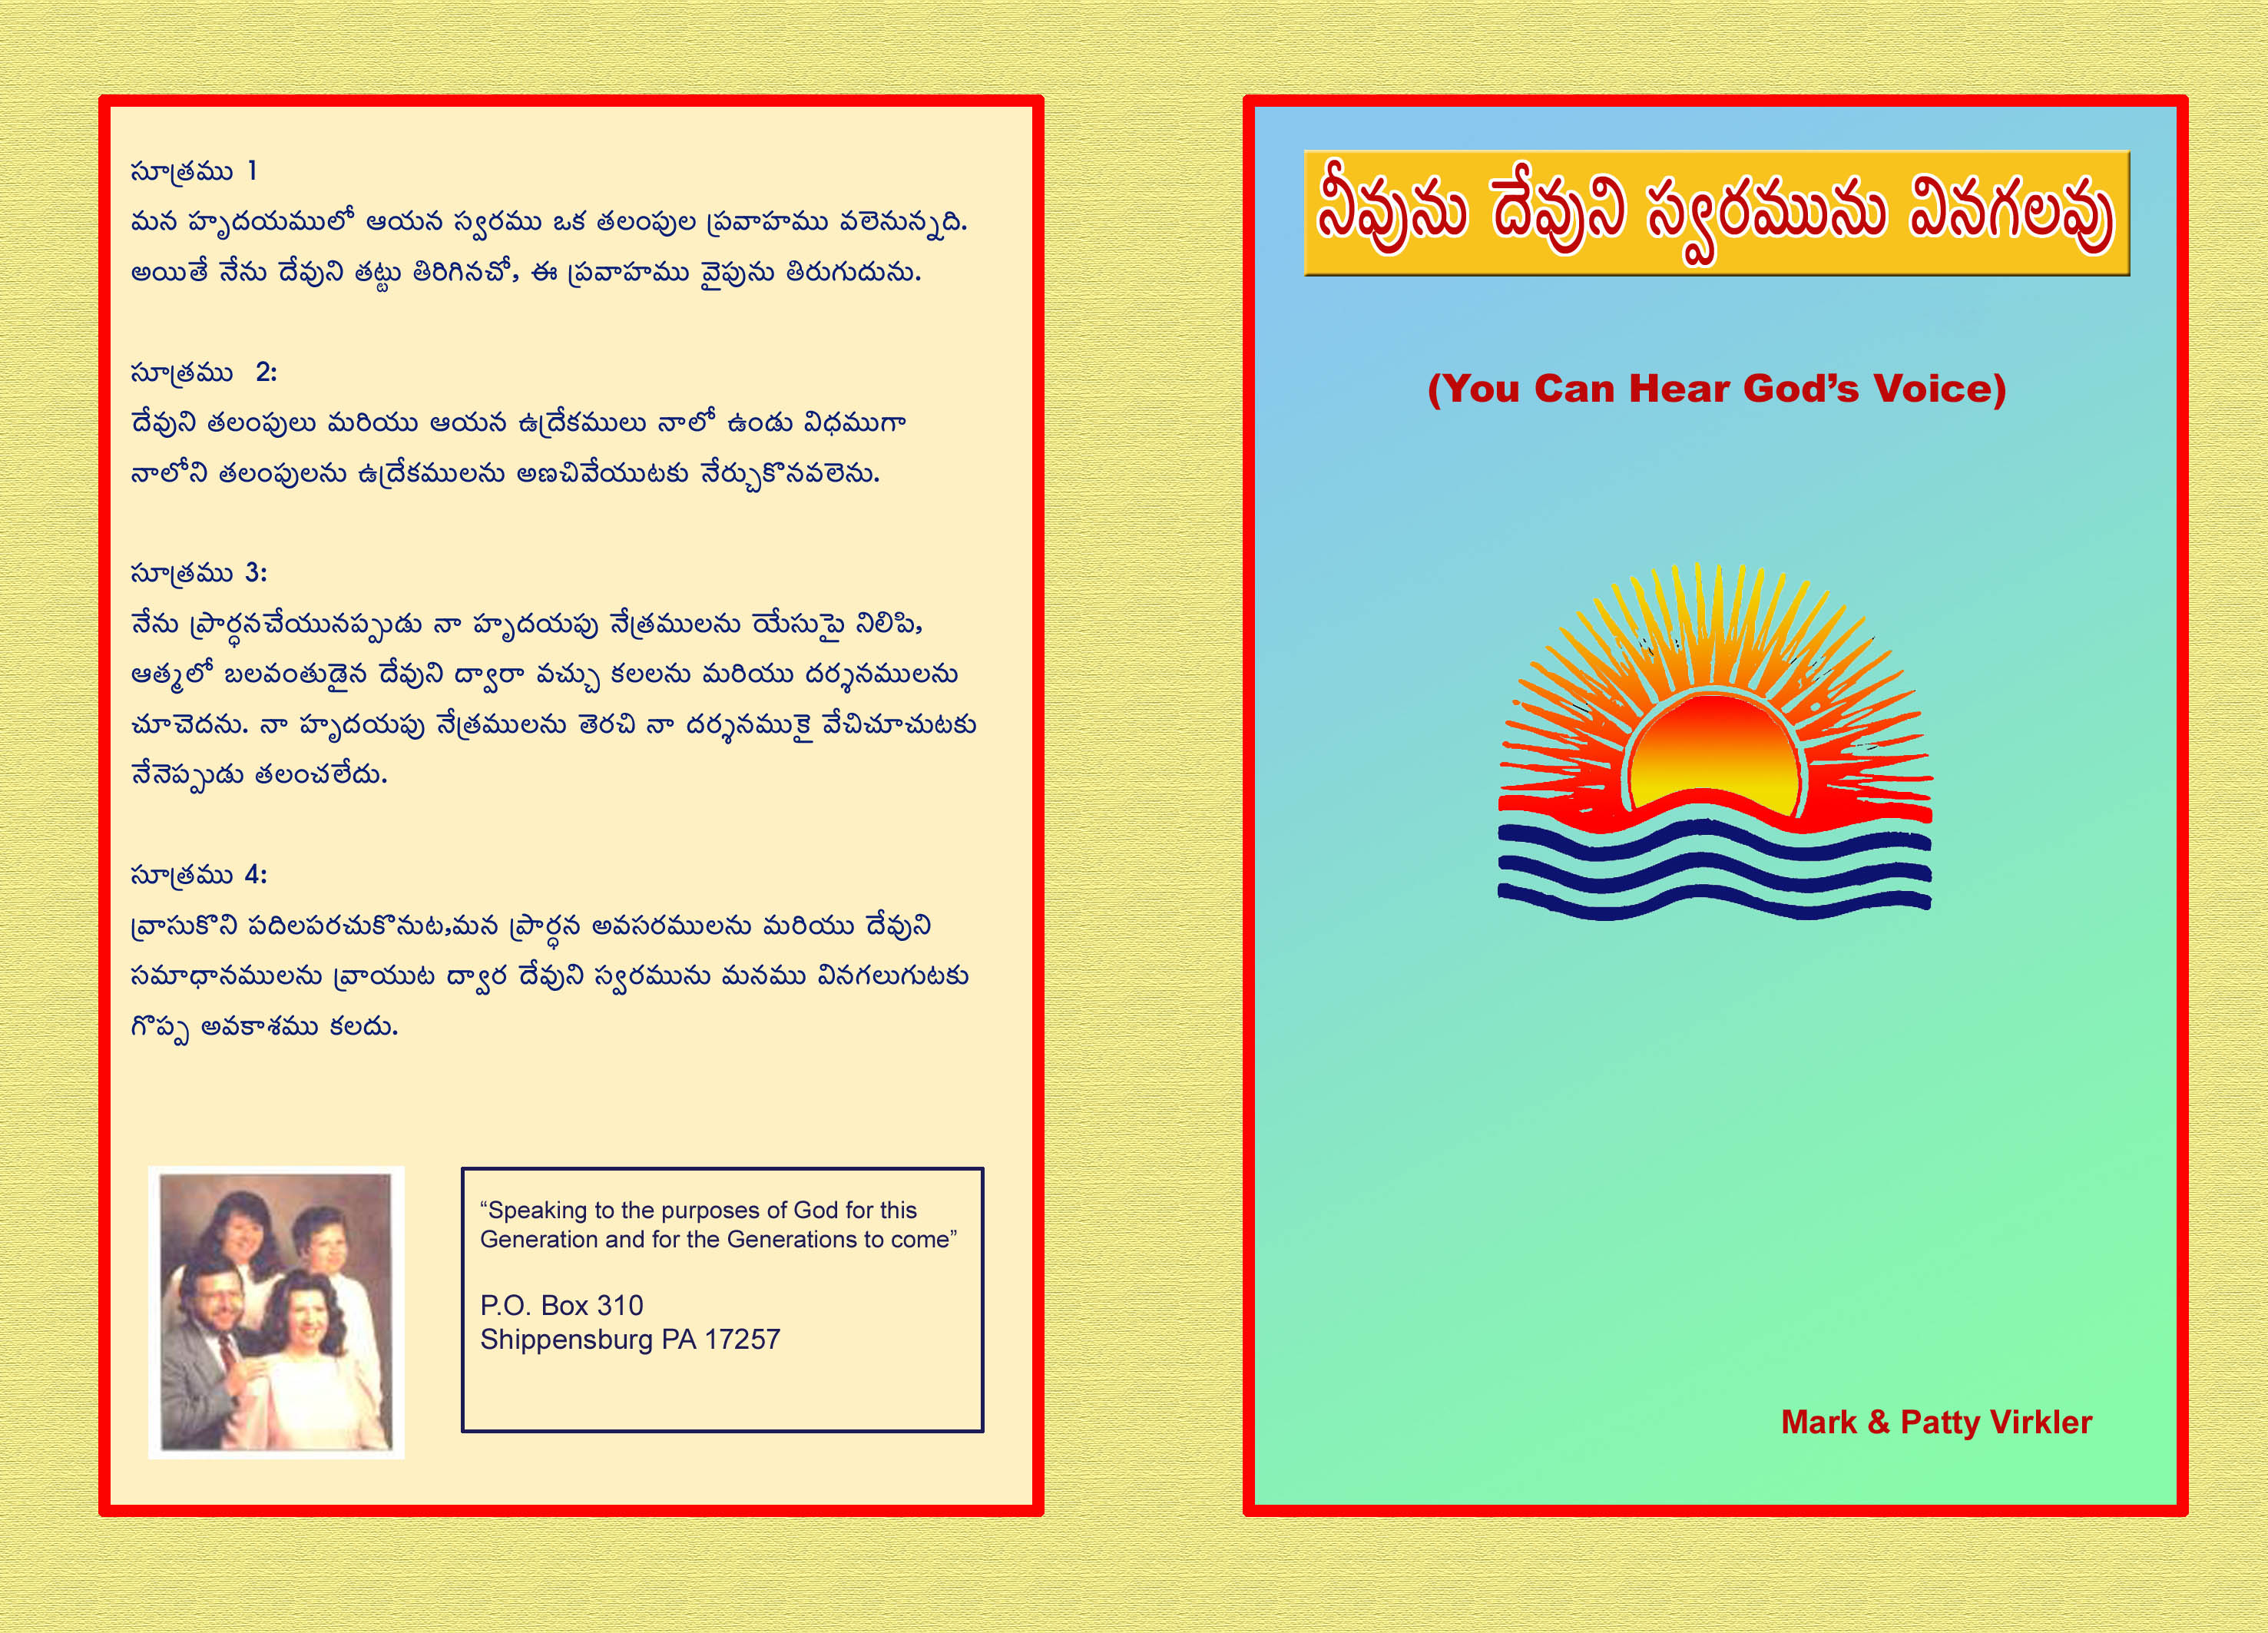 Free Christian Books and Articles: Telugu | Communion With